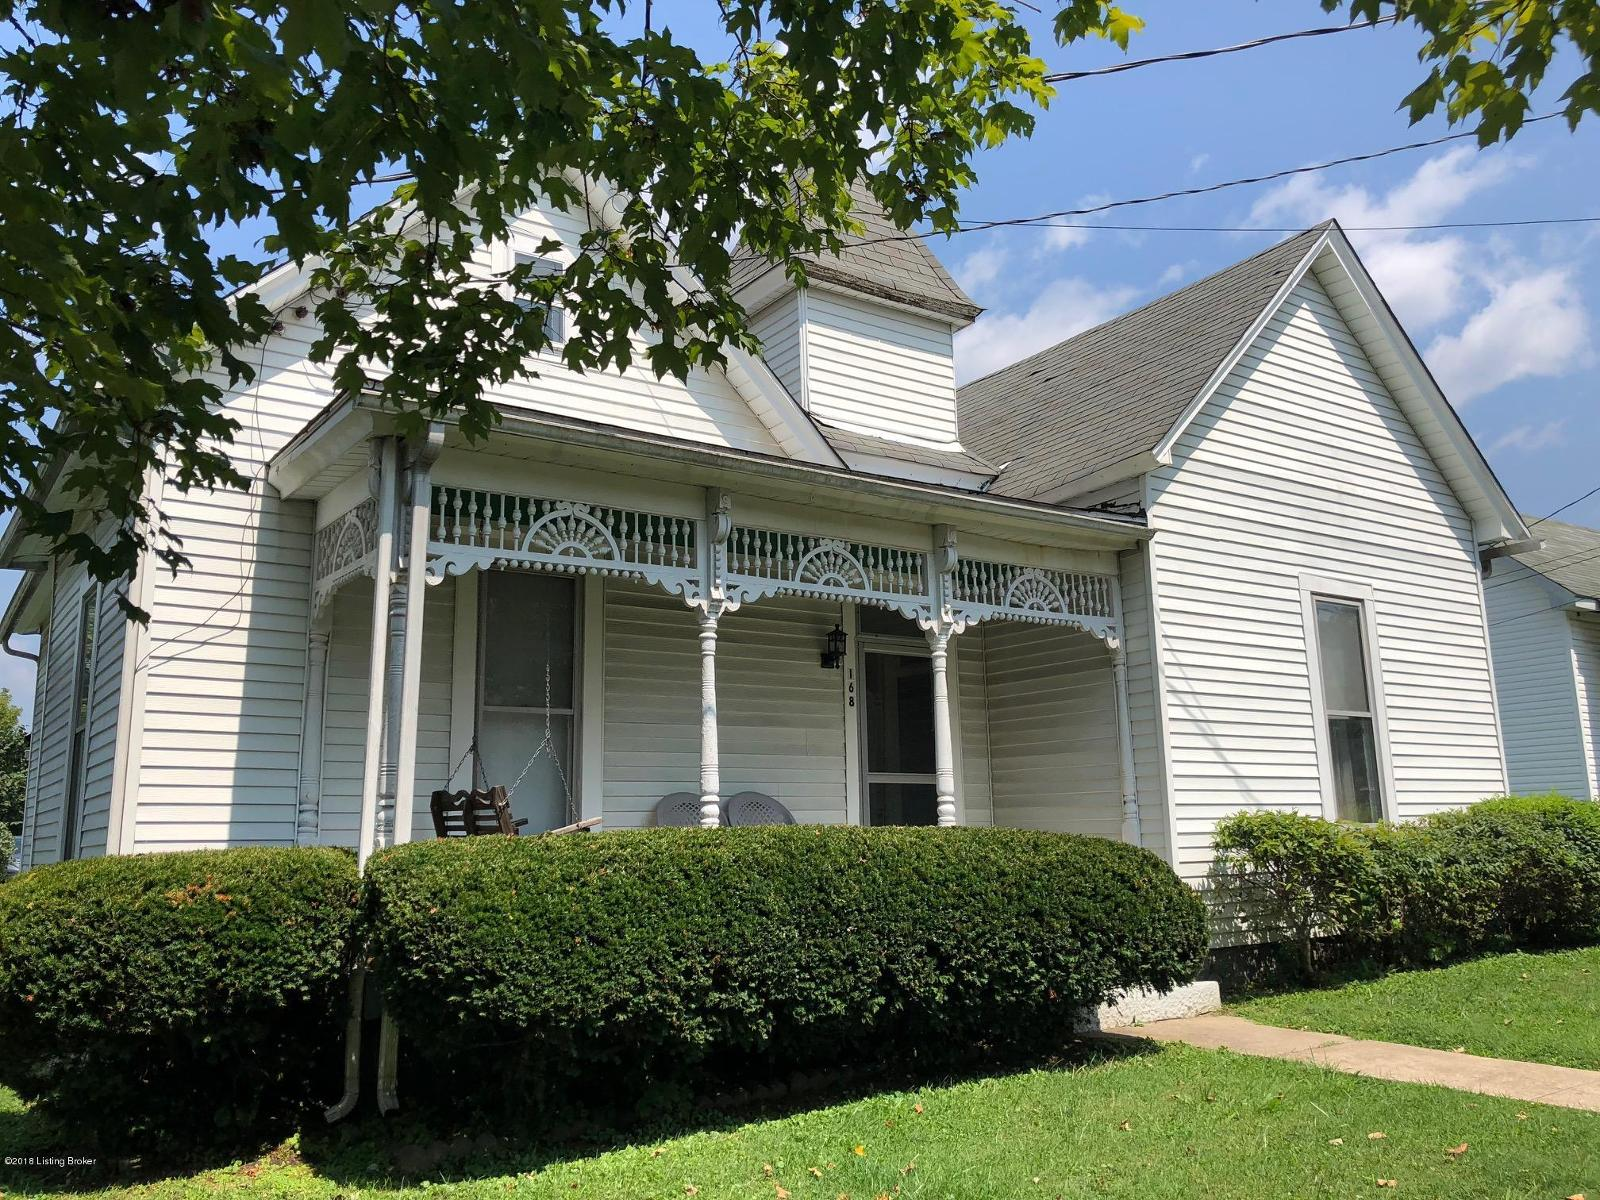 lebanon junction single parents Apartments and houses for rent in lebanon junction, ky your search for houses for rent in lebanon junction has returned 204 results search these lebanon junction rentals  3 bedroom single family home for rent in lebanon junction for 3 bedrooms 4 bathrooms rent: $1,70100 lebanon junction, ky 40150.